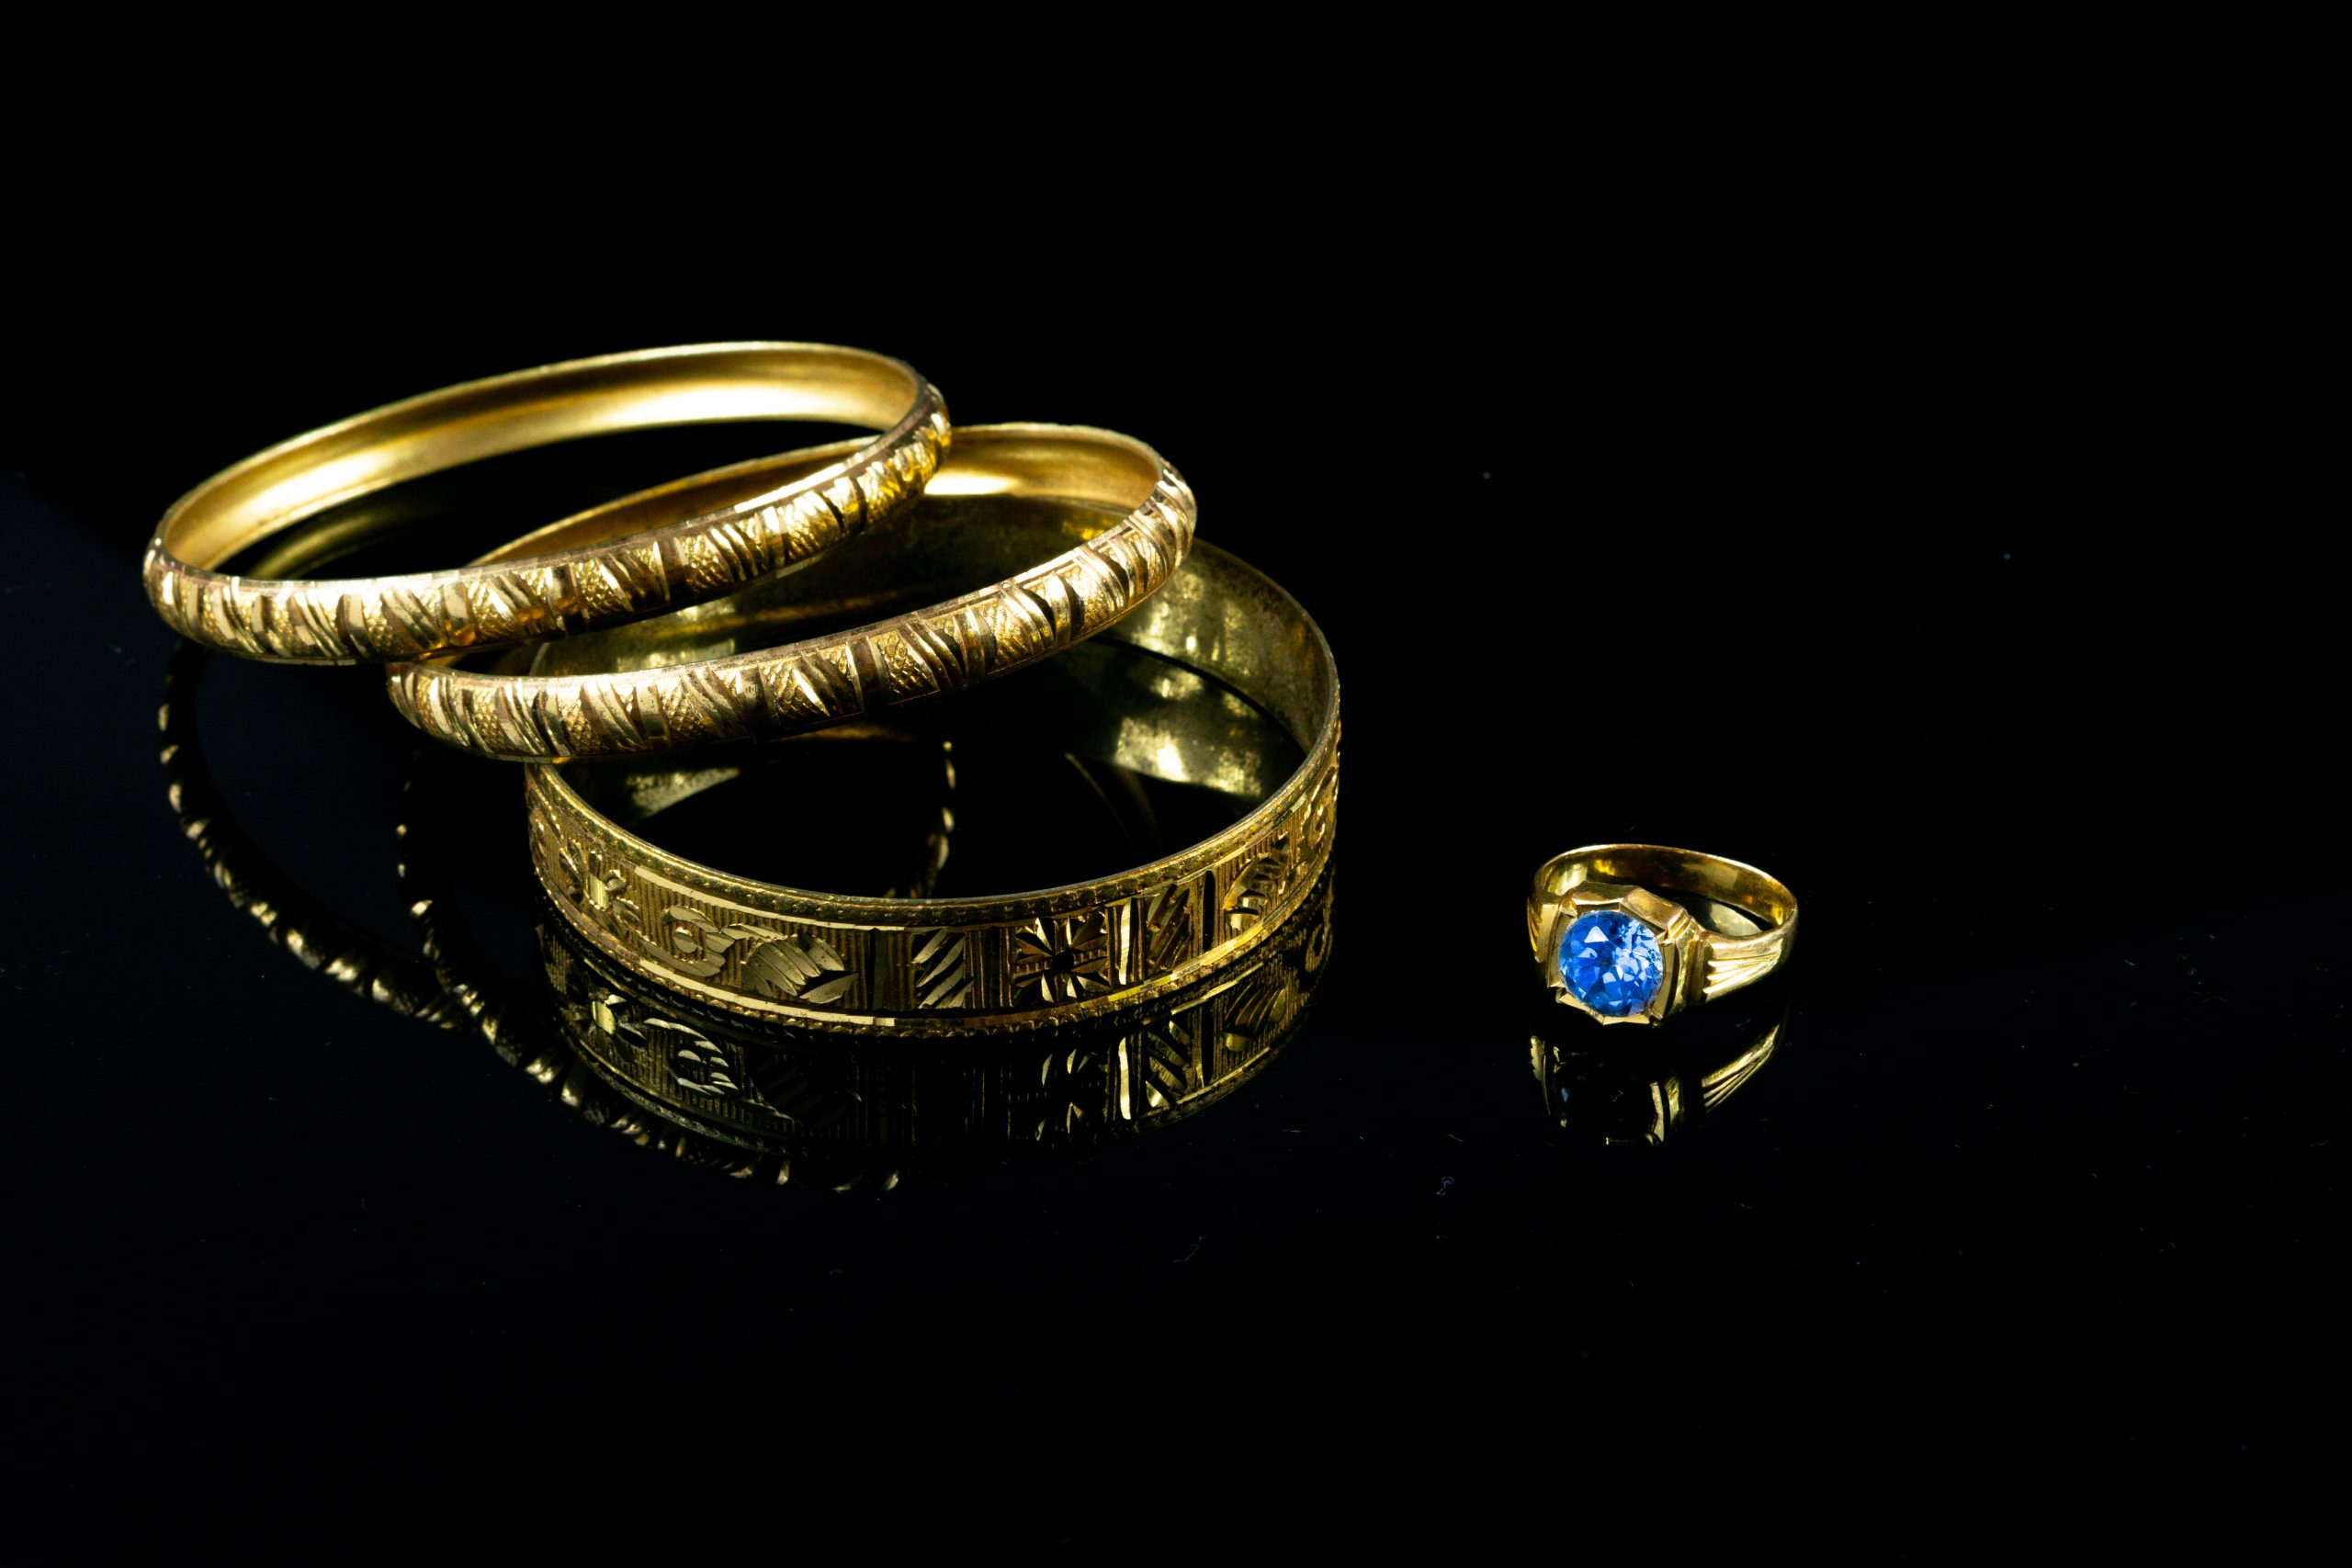 Golden bangles and ring